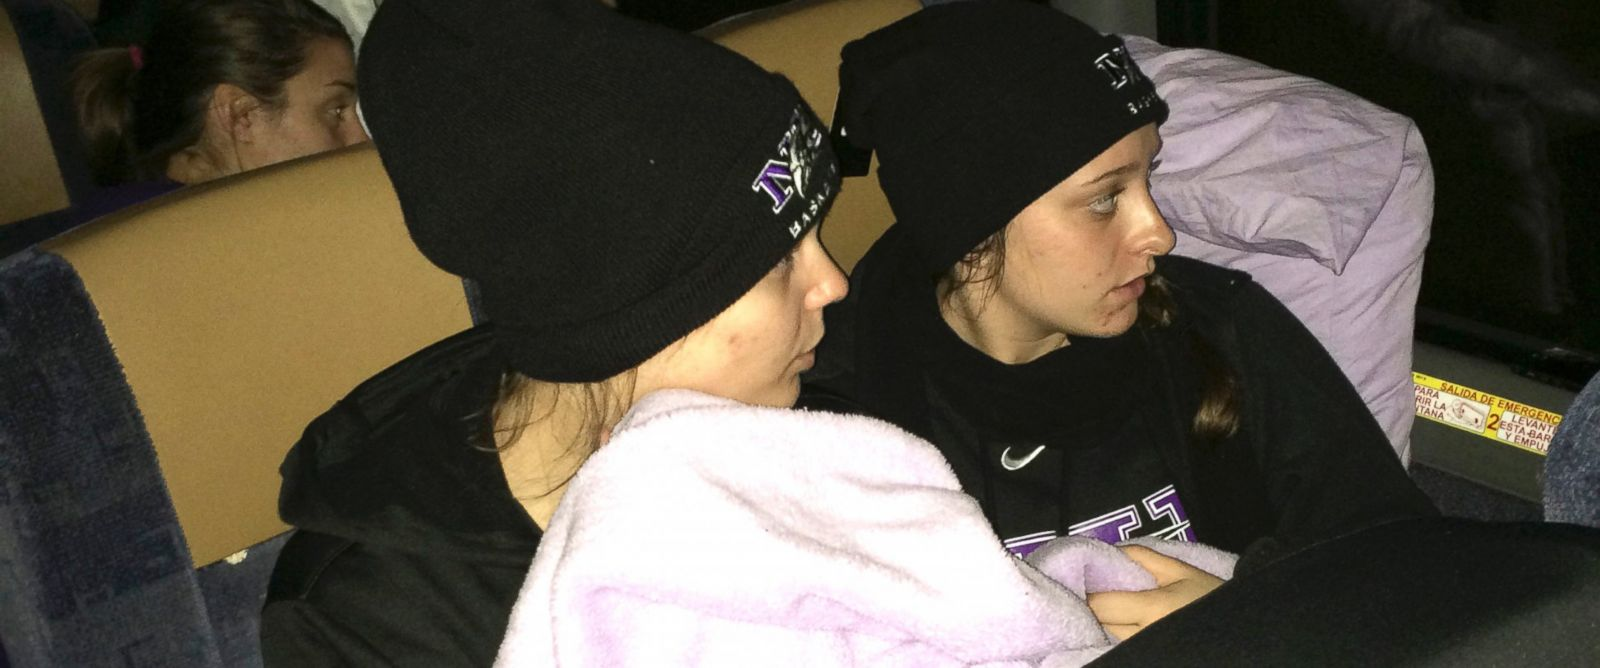 PHOTO: In this photo provided by Niagaras Tiffany Corselli, teammates Gabby Baldasare and Jamie Sherburne huddle under a blanket while stuck on a bus near Buffalo, N.Y., Nov. 18, 2014.